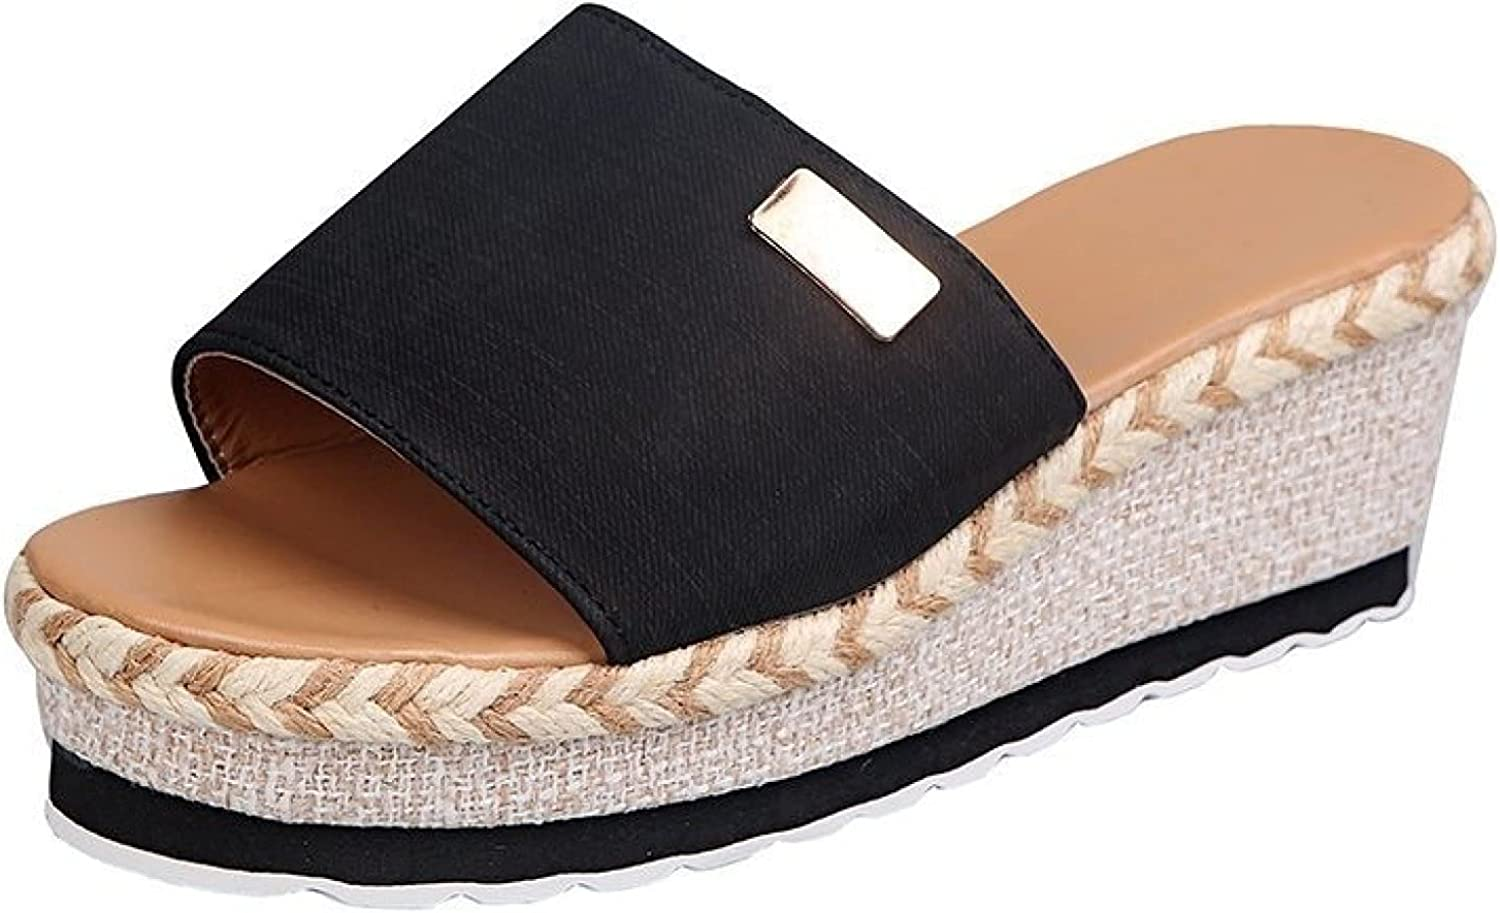 Platform free shipping Slides Sandal for Woman Rest Canvas Toe Now free shipping Vacation Peep